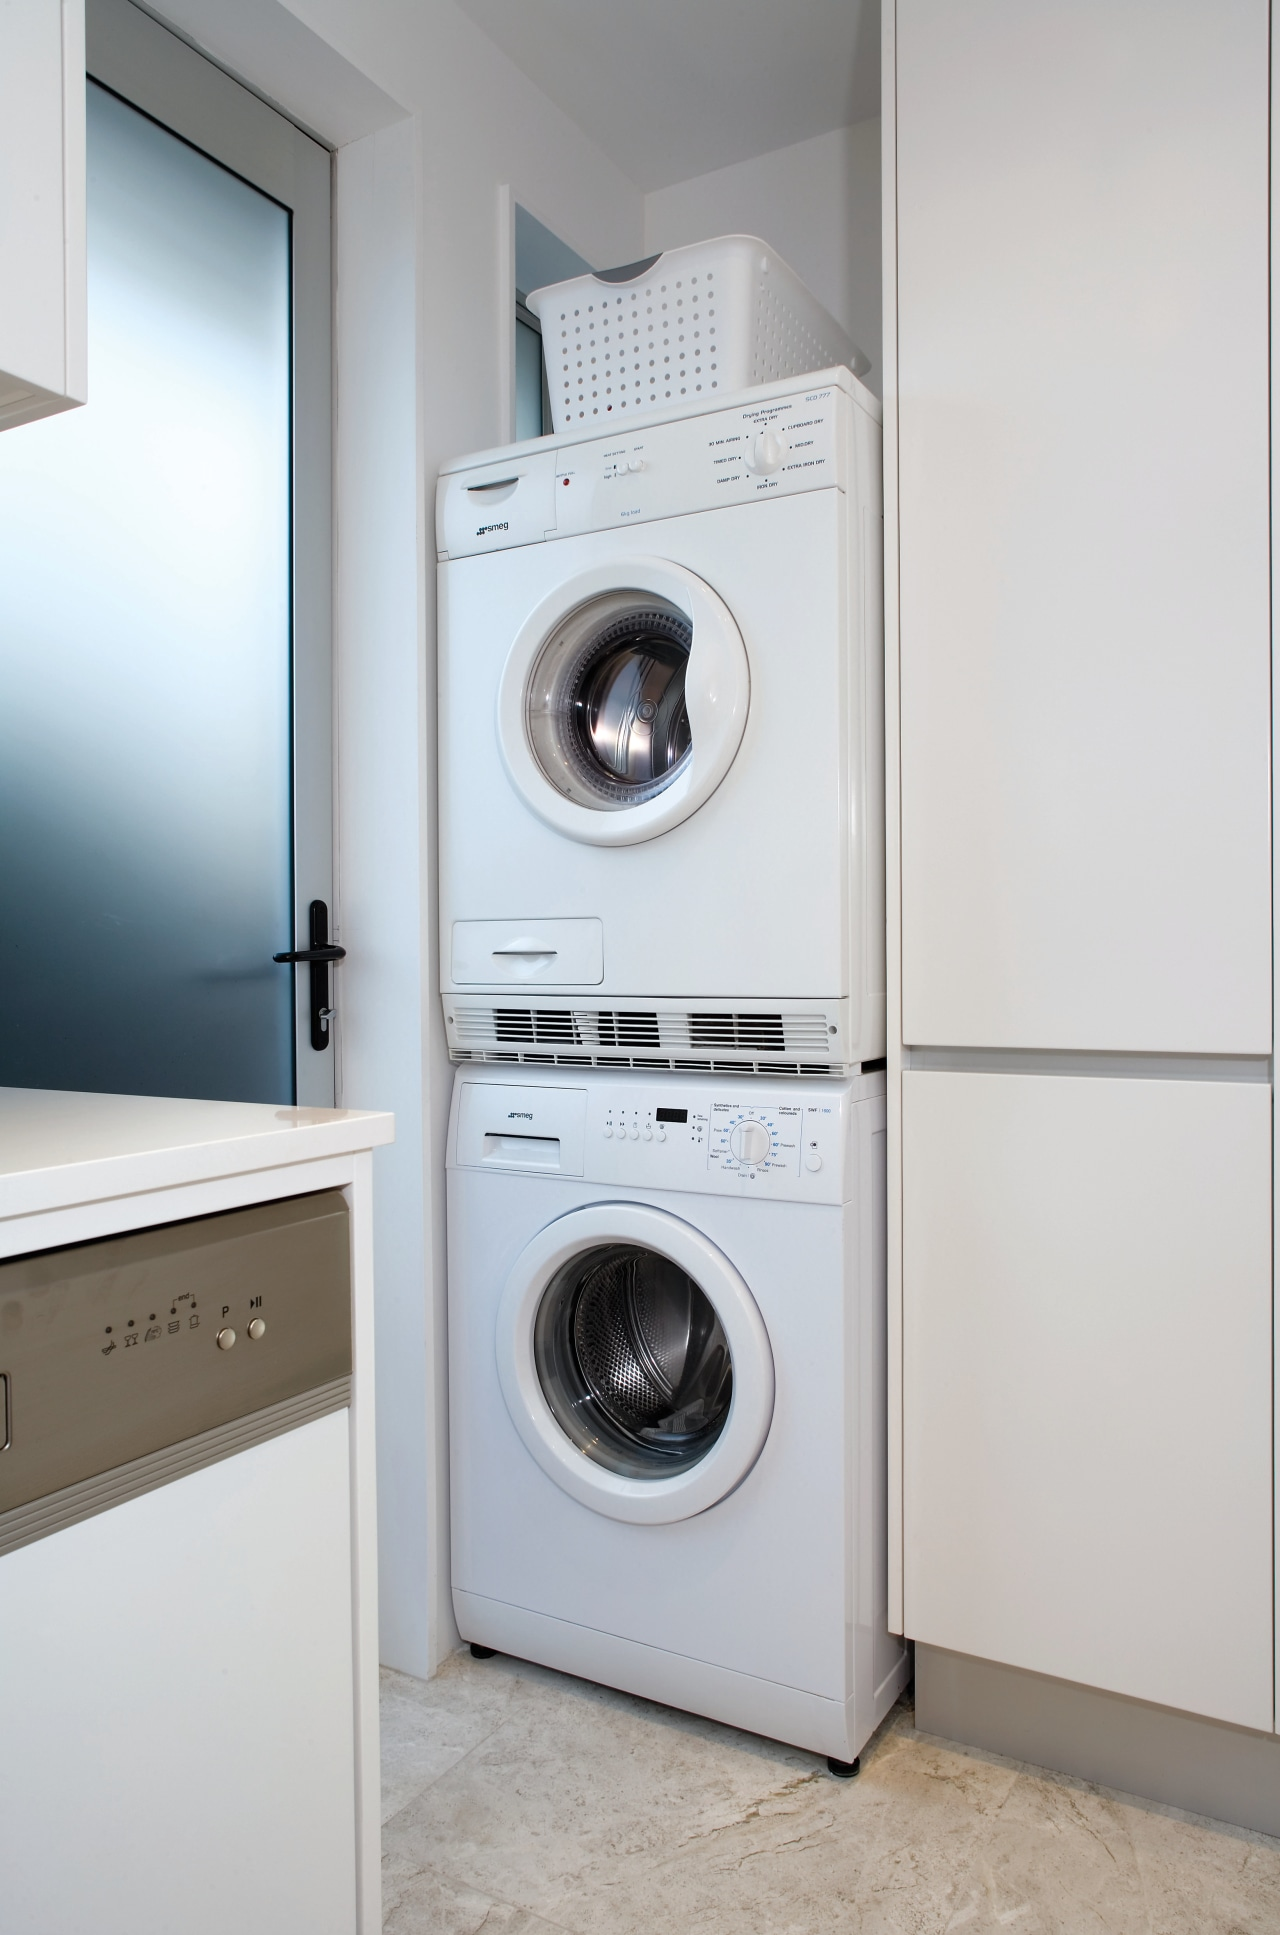 A view of the smeg washing machine and clothes dryer, home appliance, laundry, laundry room, major appliance, product, product design, room, washing machine, gray